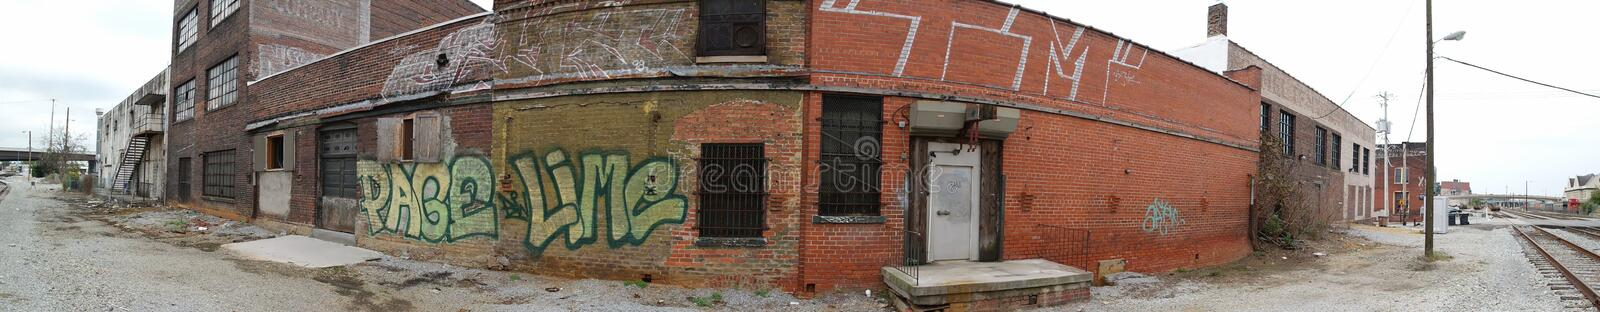 Graffiti a real problem in most towns stock images